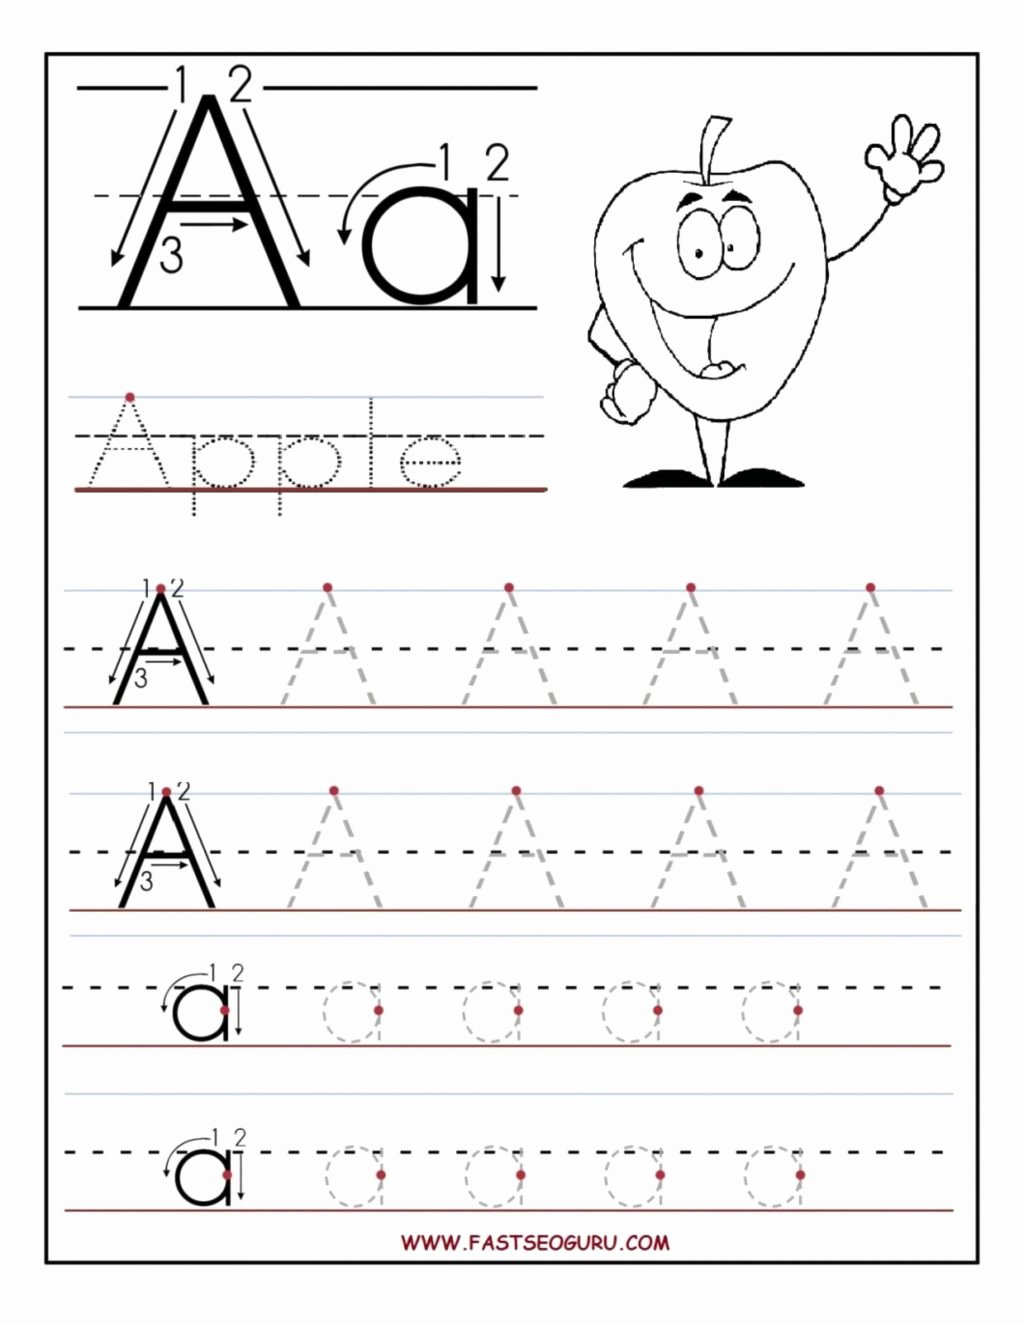 Trace Worksheets for Preschoolers Lovely Worksheet Worksheet Trace Letters Tracing Worksheets for